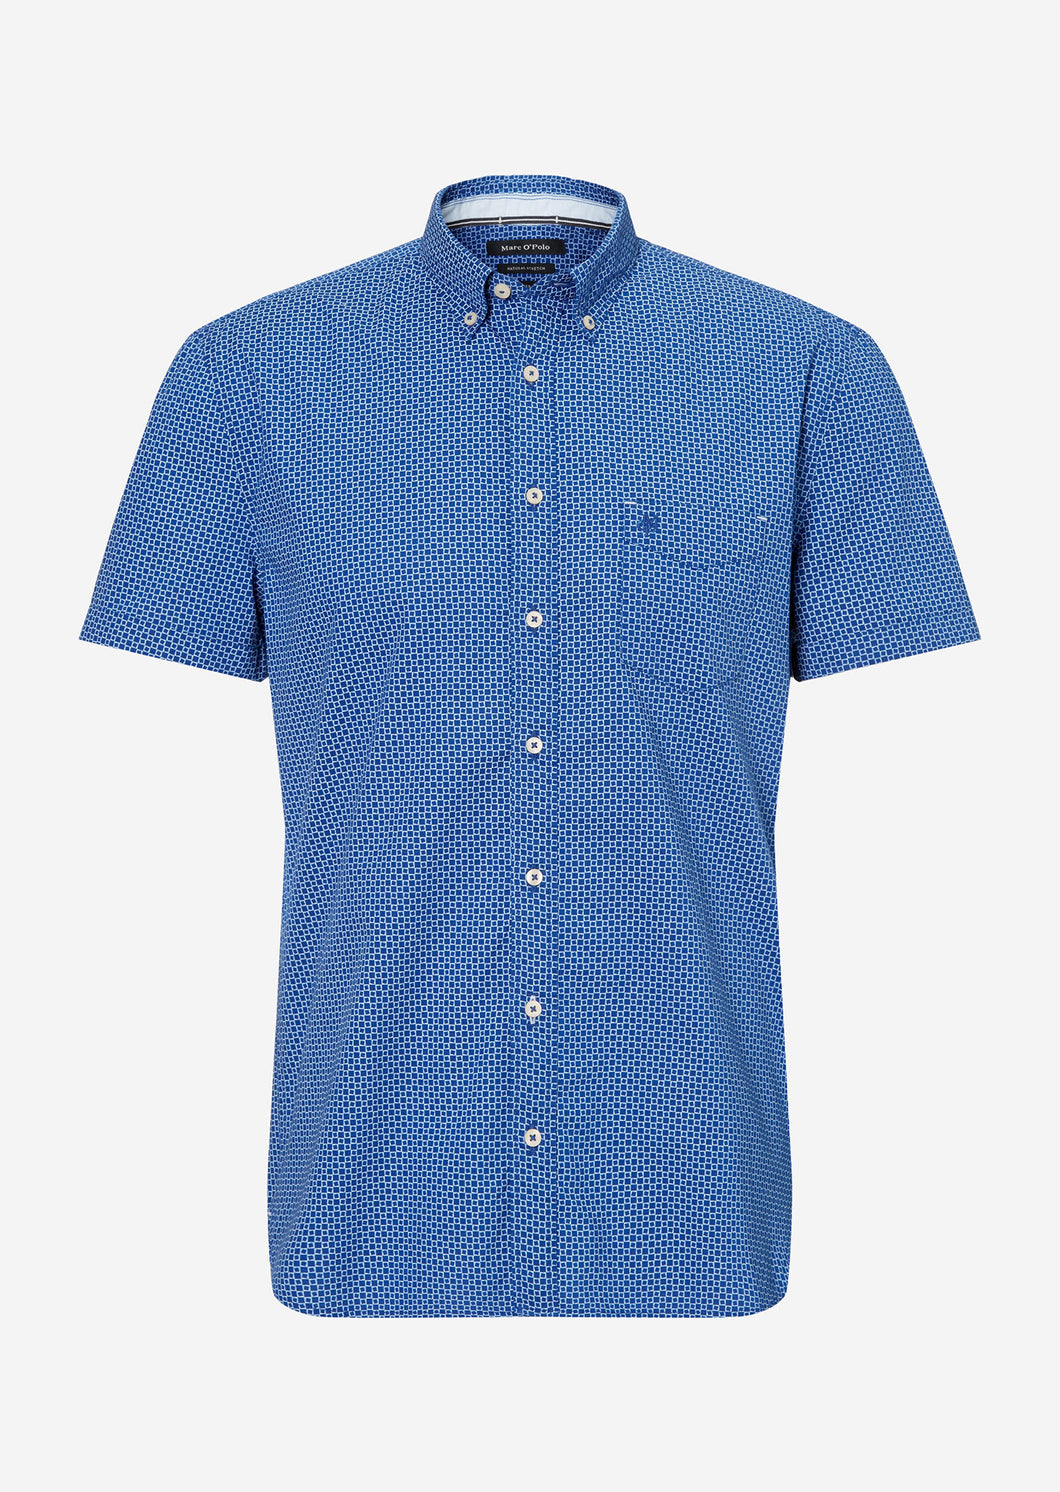 Button down,short sleeve turned up, - 023720141002